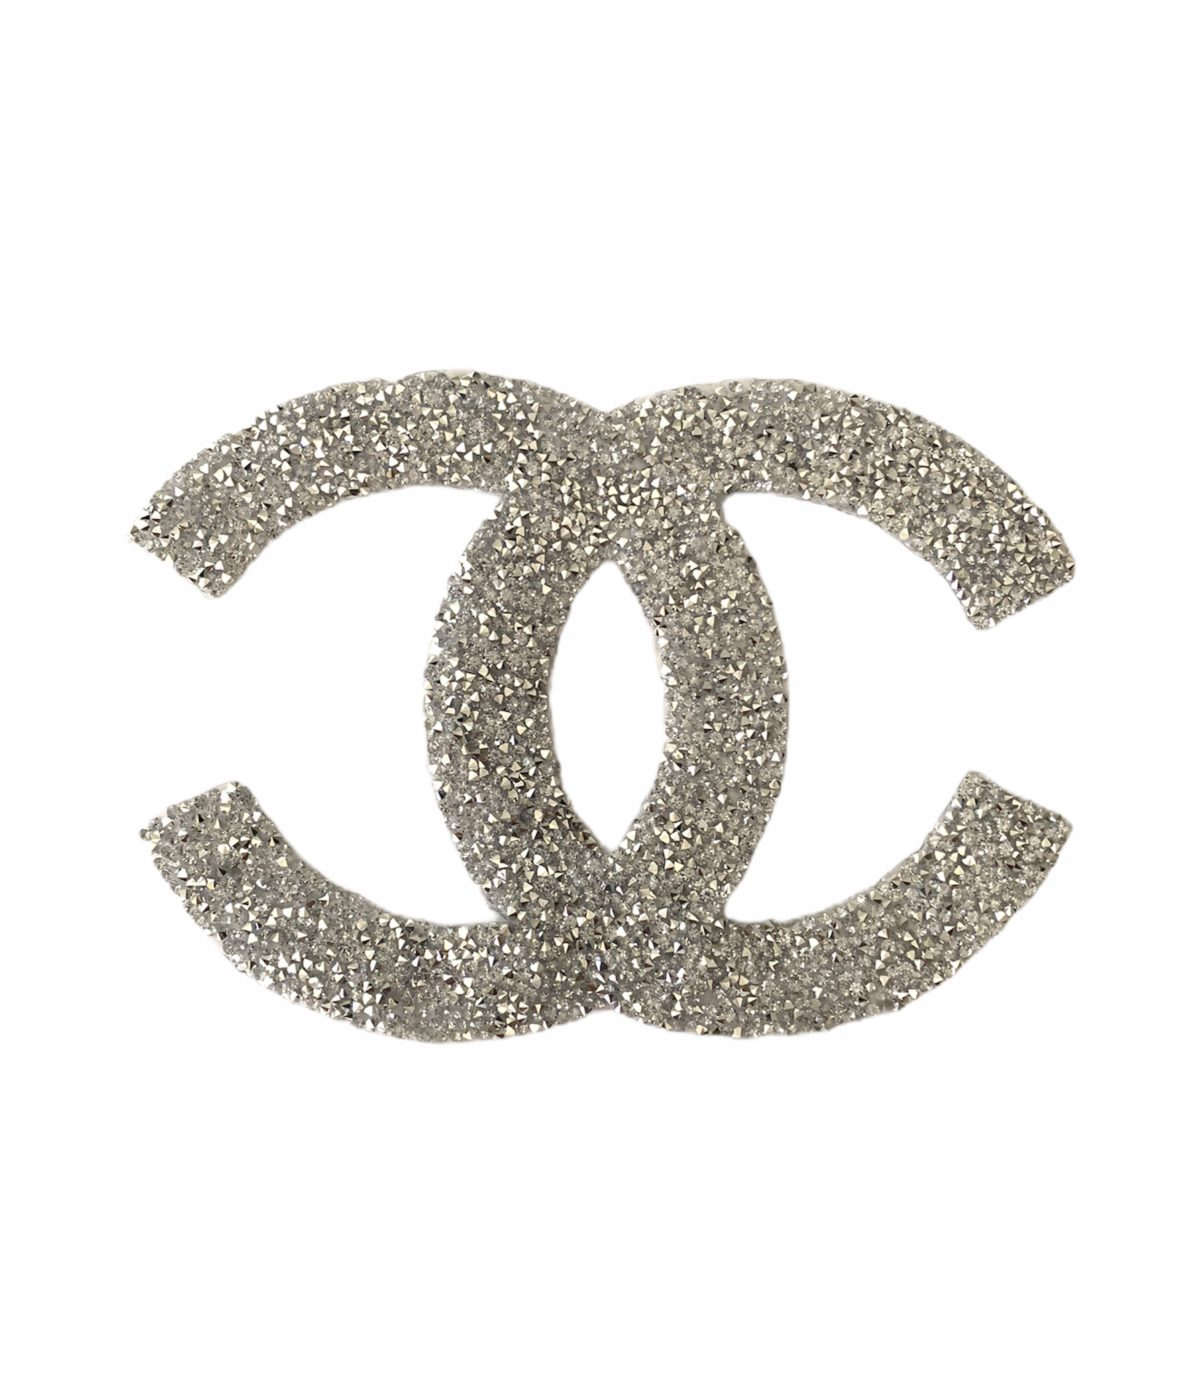 New CC Hotfix Patch, Iron On, Rhinestone Chanel, Large Design 2